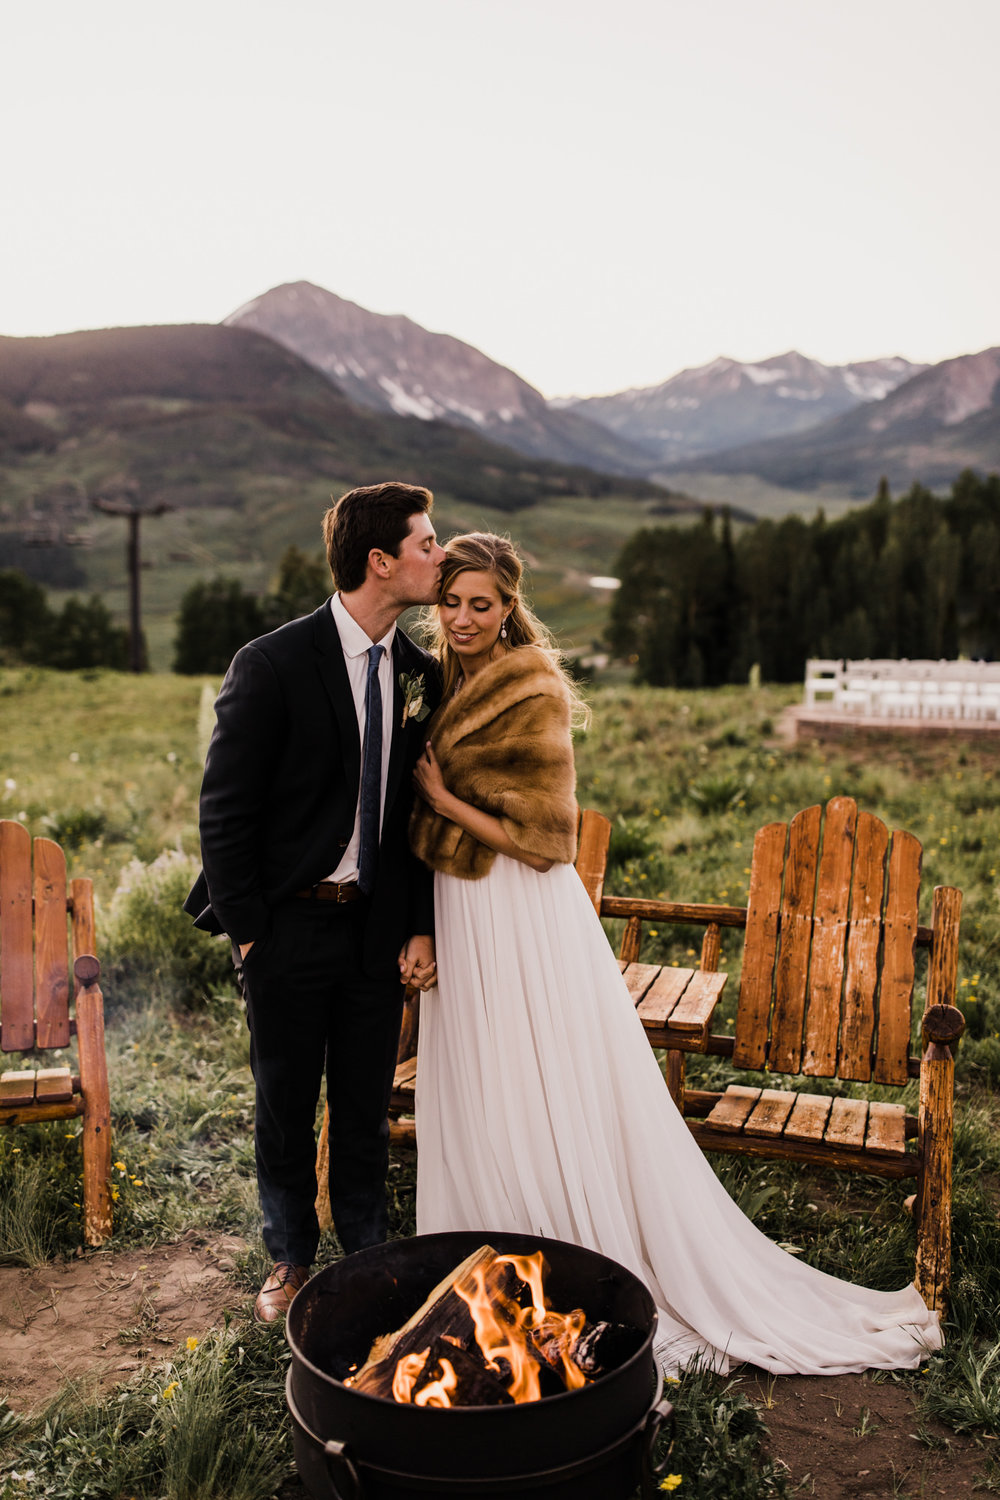 laurann + matt's intimate wedding | ten peaks ceremony site | crested butte mountain resort | colorado wedding photographer | the hearnes adventure photography